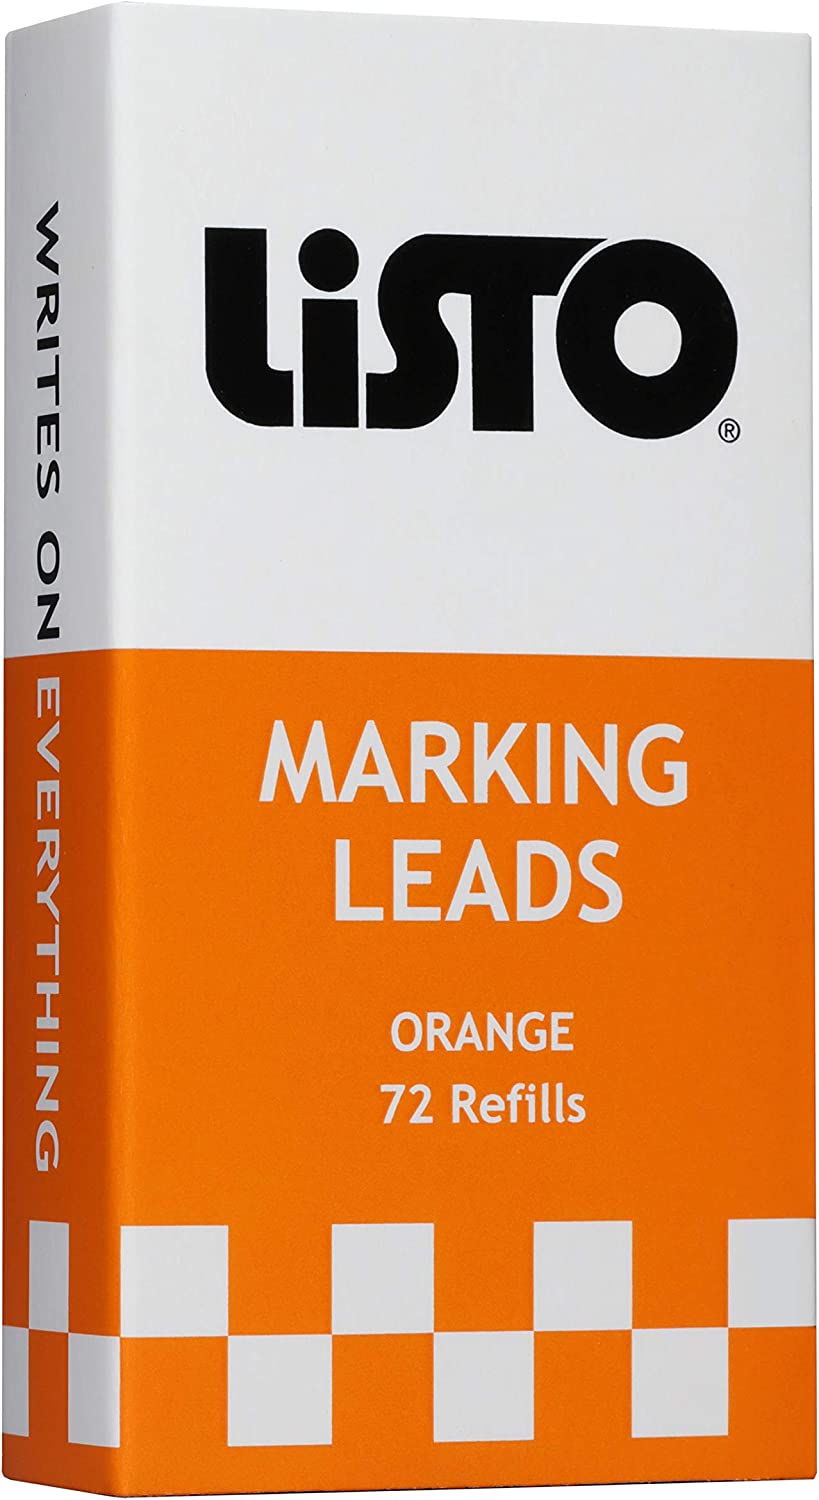 Listo 162 Marking Pencils Refill - ORANGE, Box of 72, Grease Pencils/China Marking Pencils/Wax Pencils : Office Products